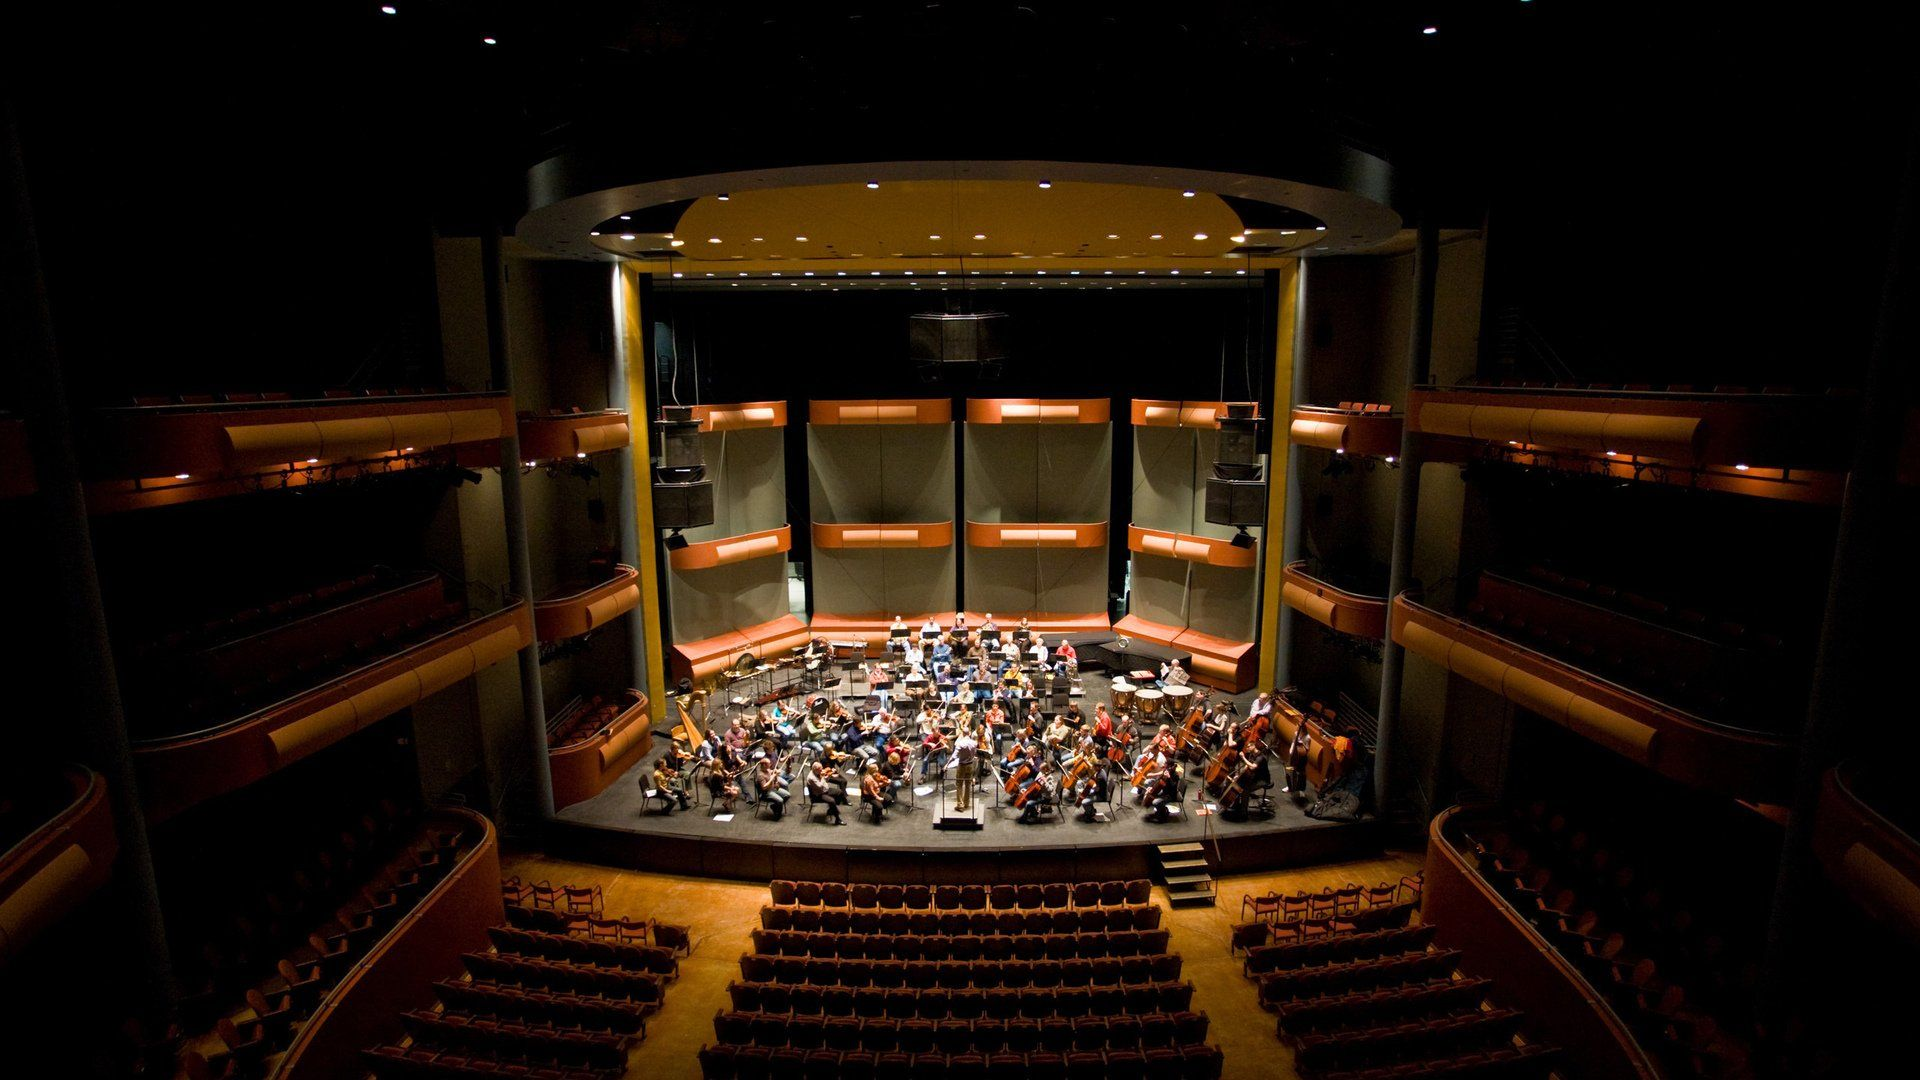 1920x1080 2992119 1920x1080 musician rehearsal theaters orchestra ...